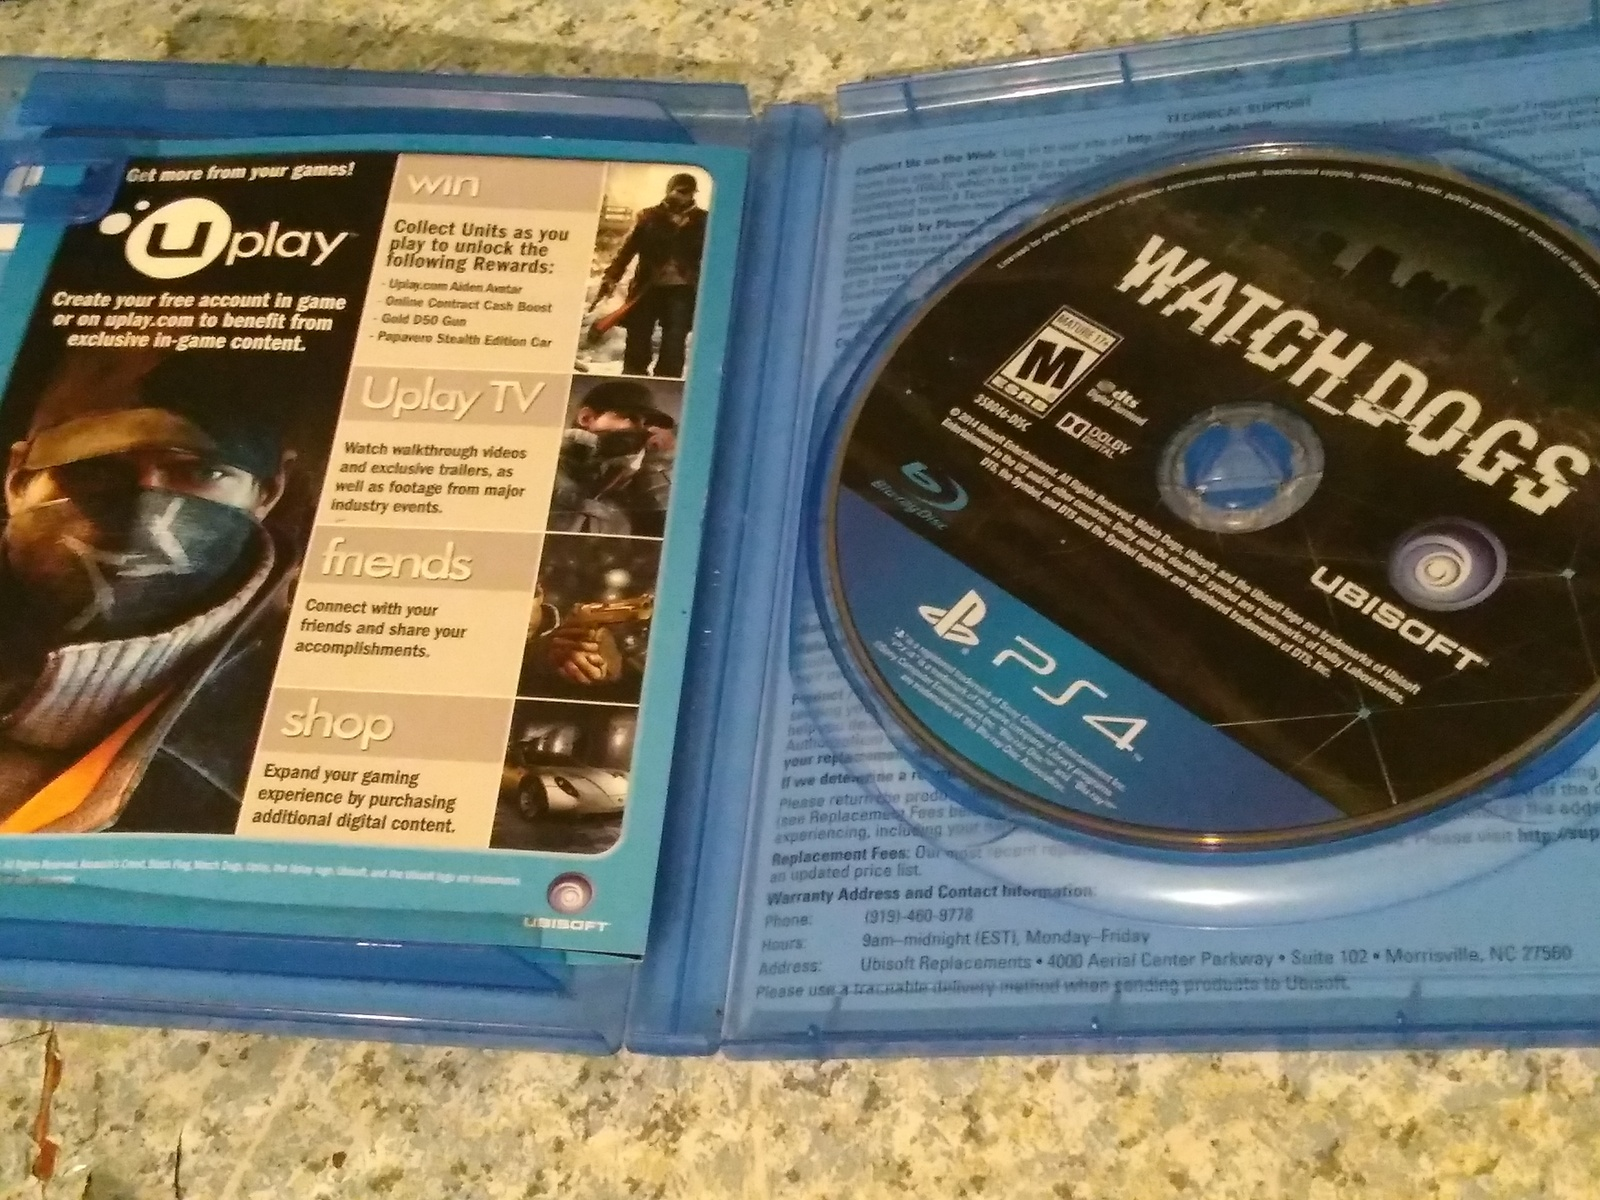 Watch Dogs Sony PlayStation 4 image 2